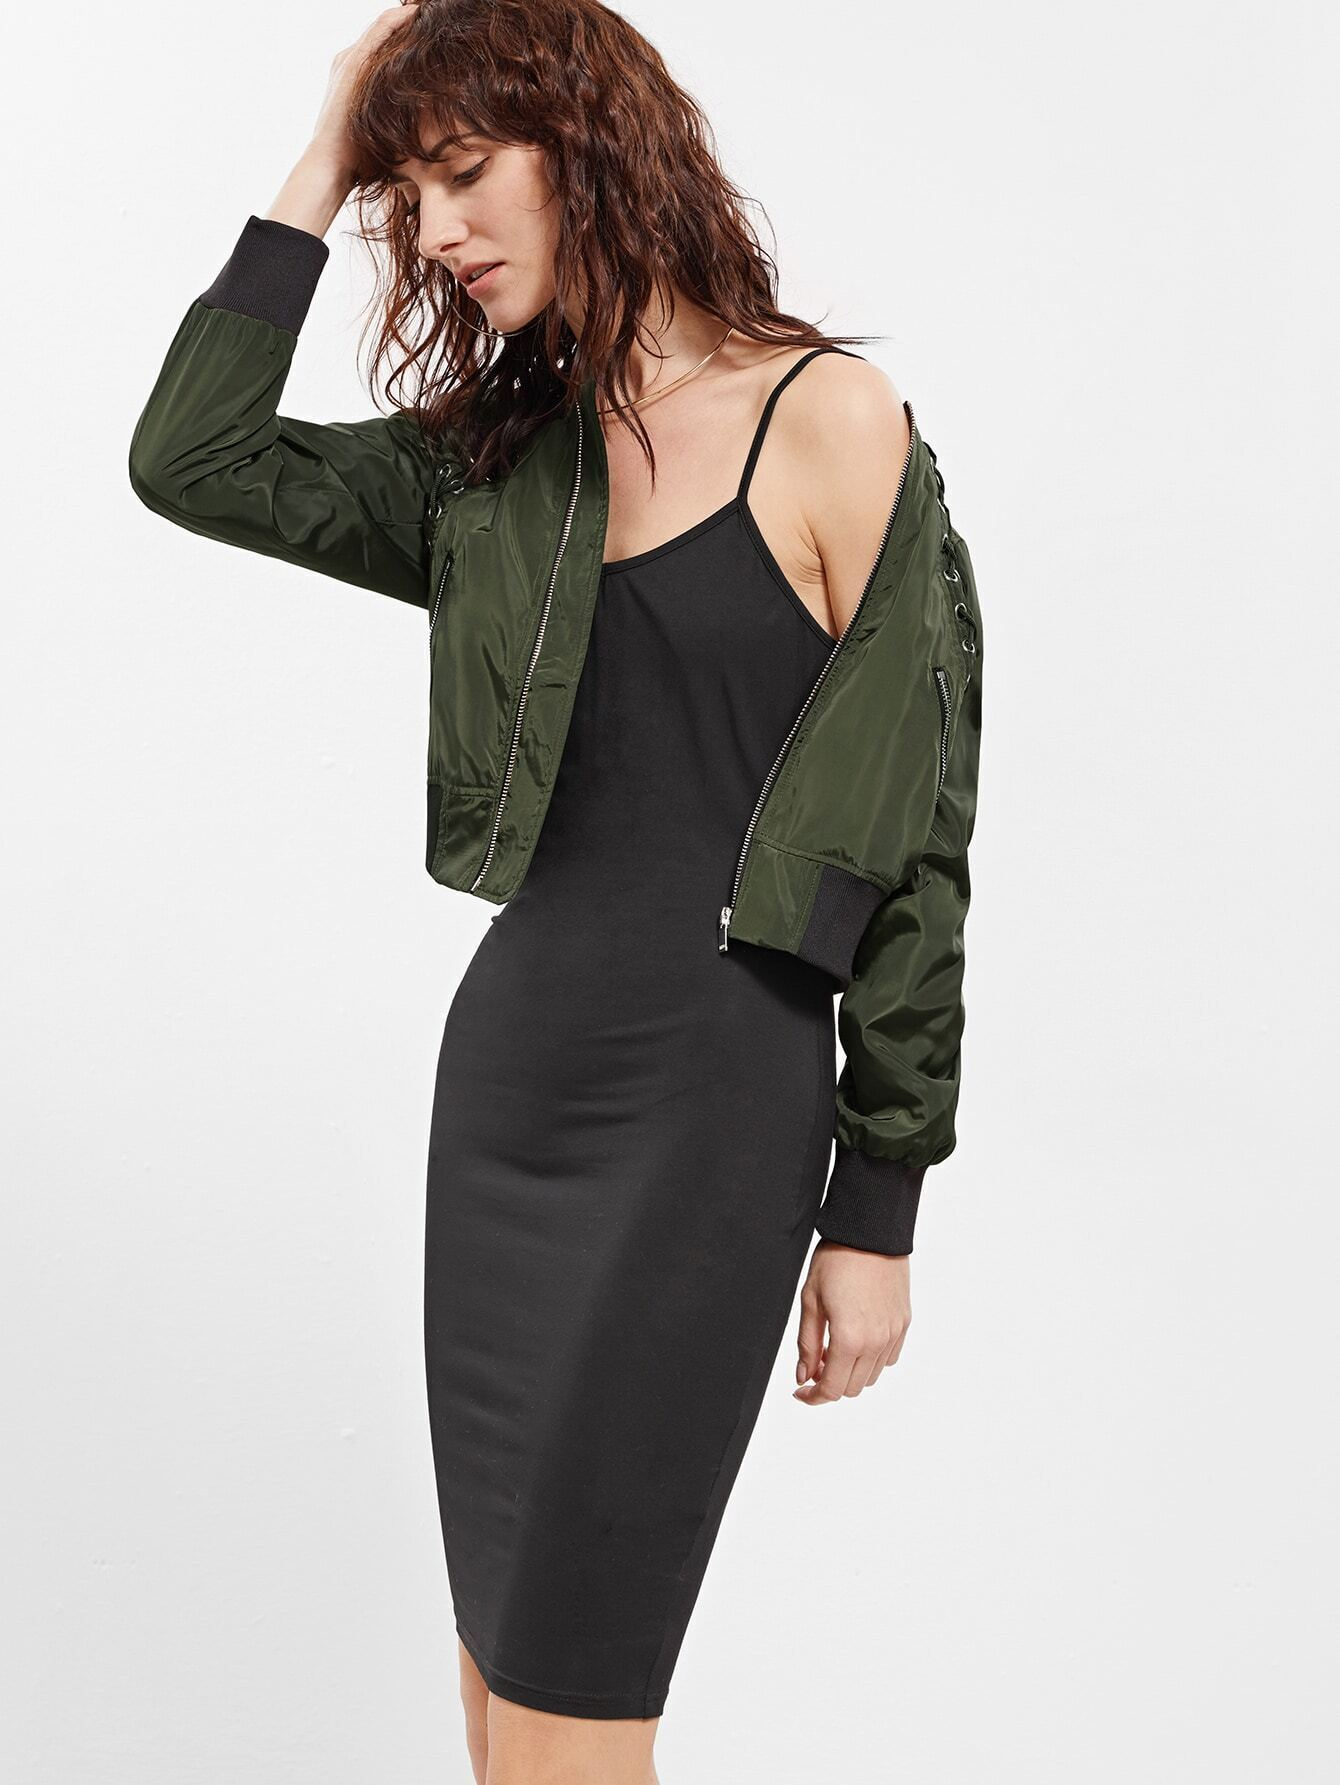 Army Green Eyelet Lace Up Contrast Trim Jacket jacket160913772